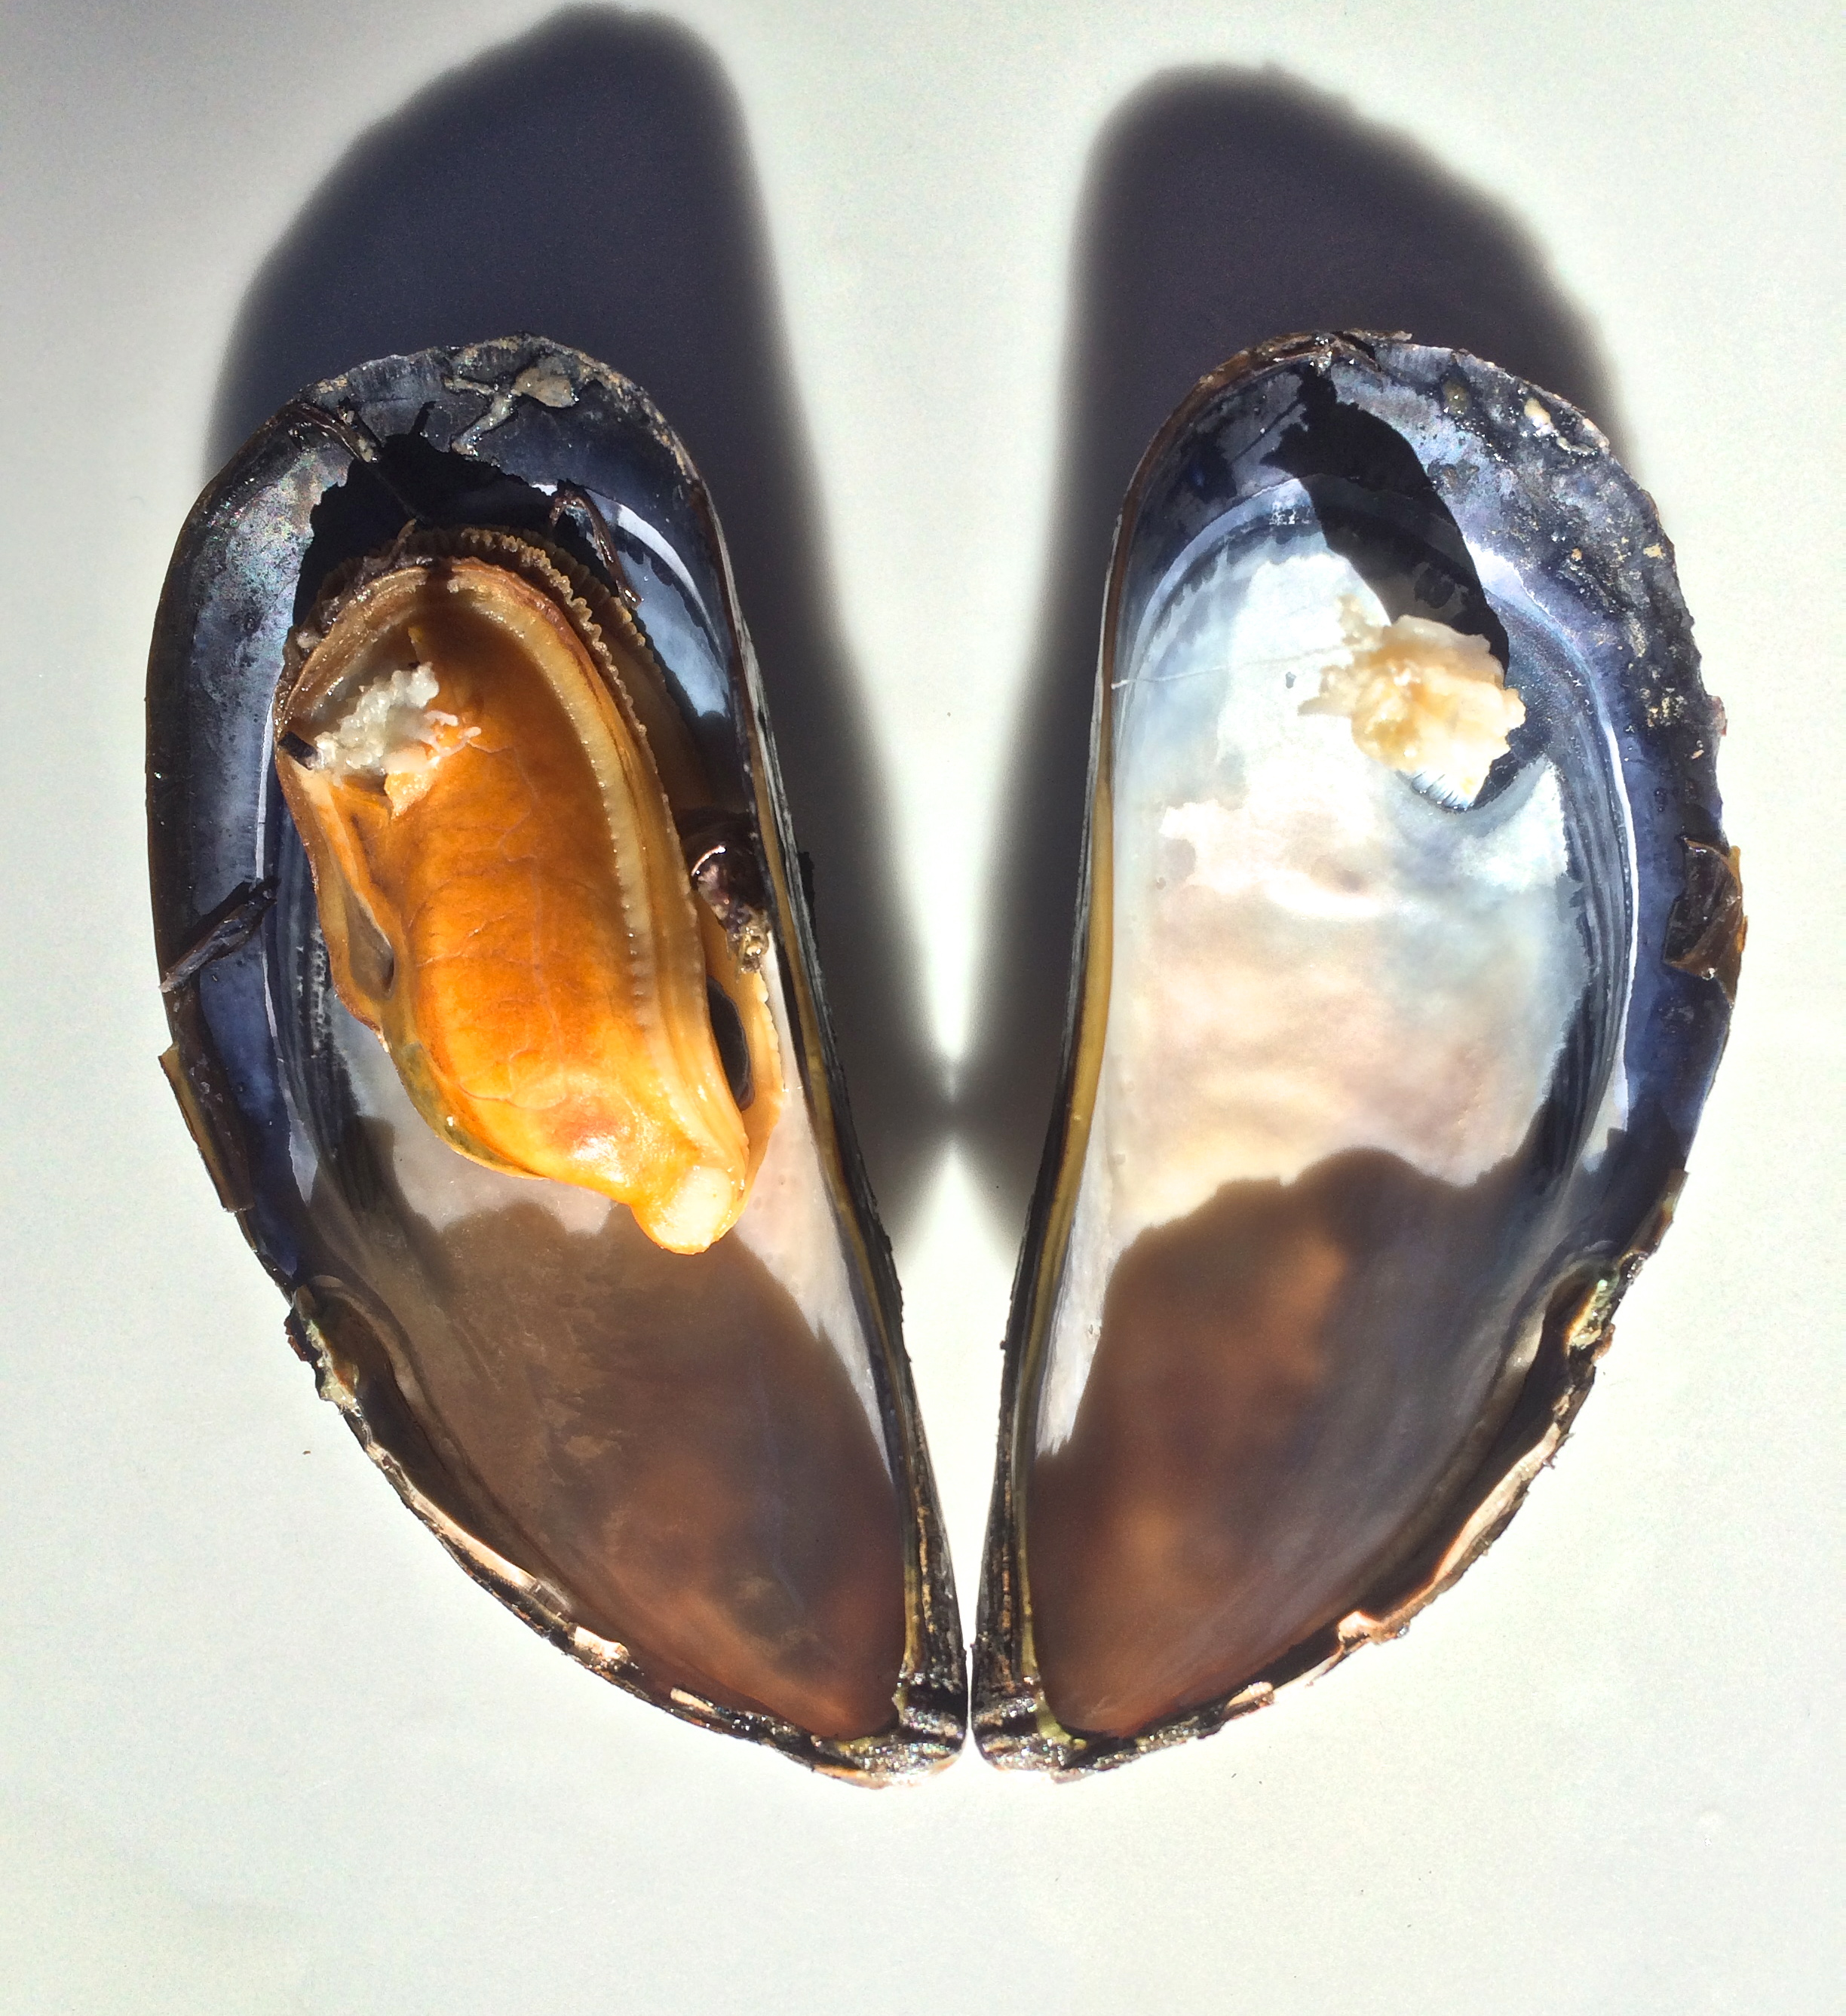 Bilateral symmetry is a feature of mussel bivalves.